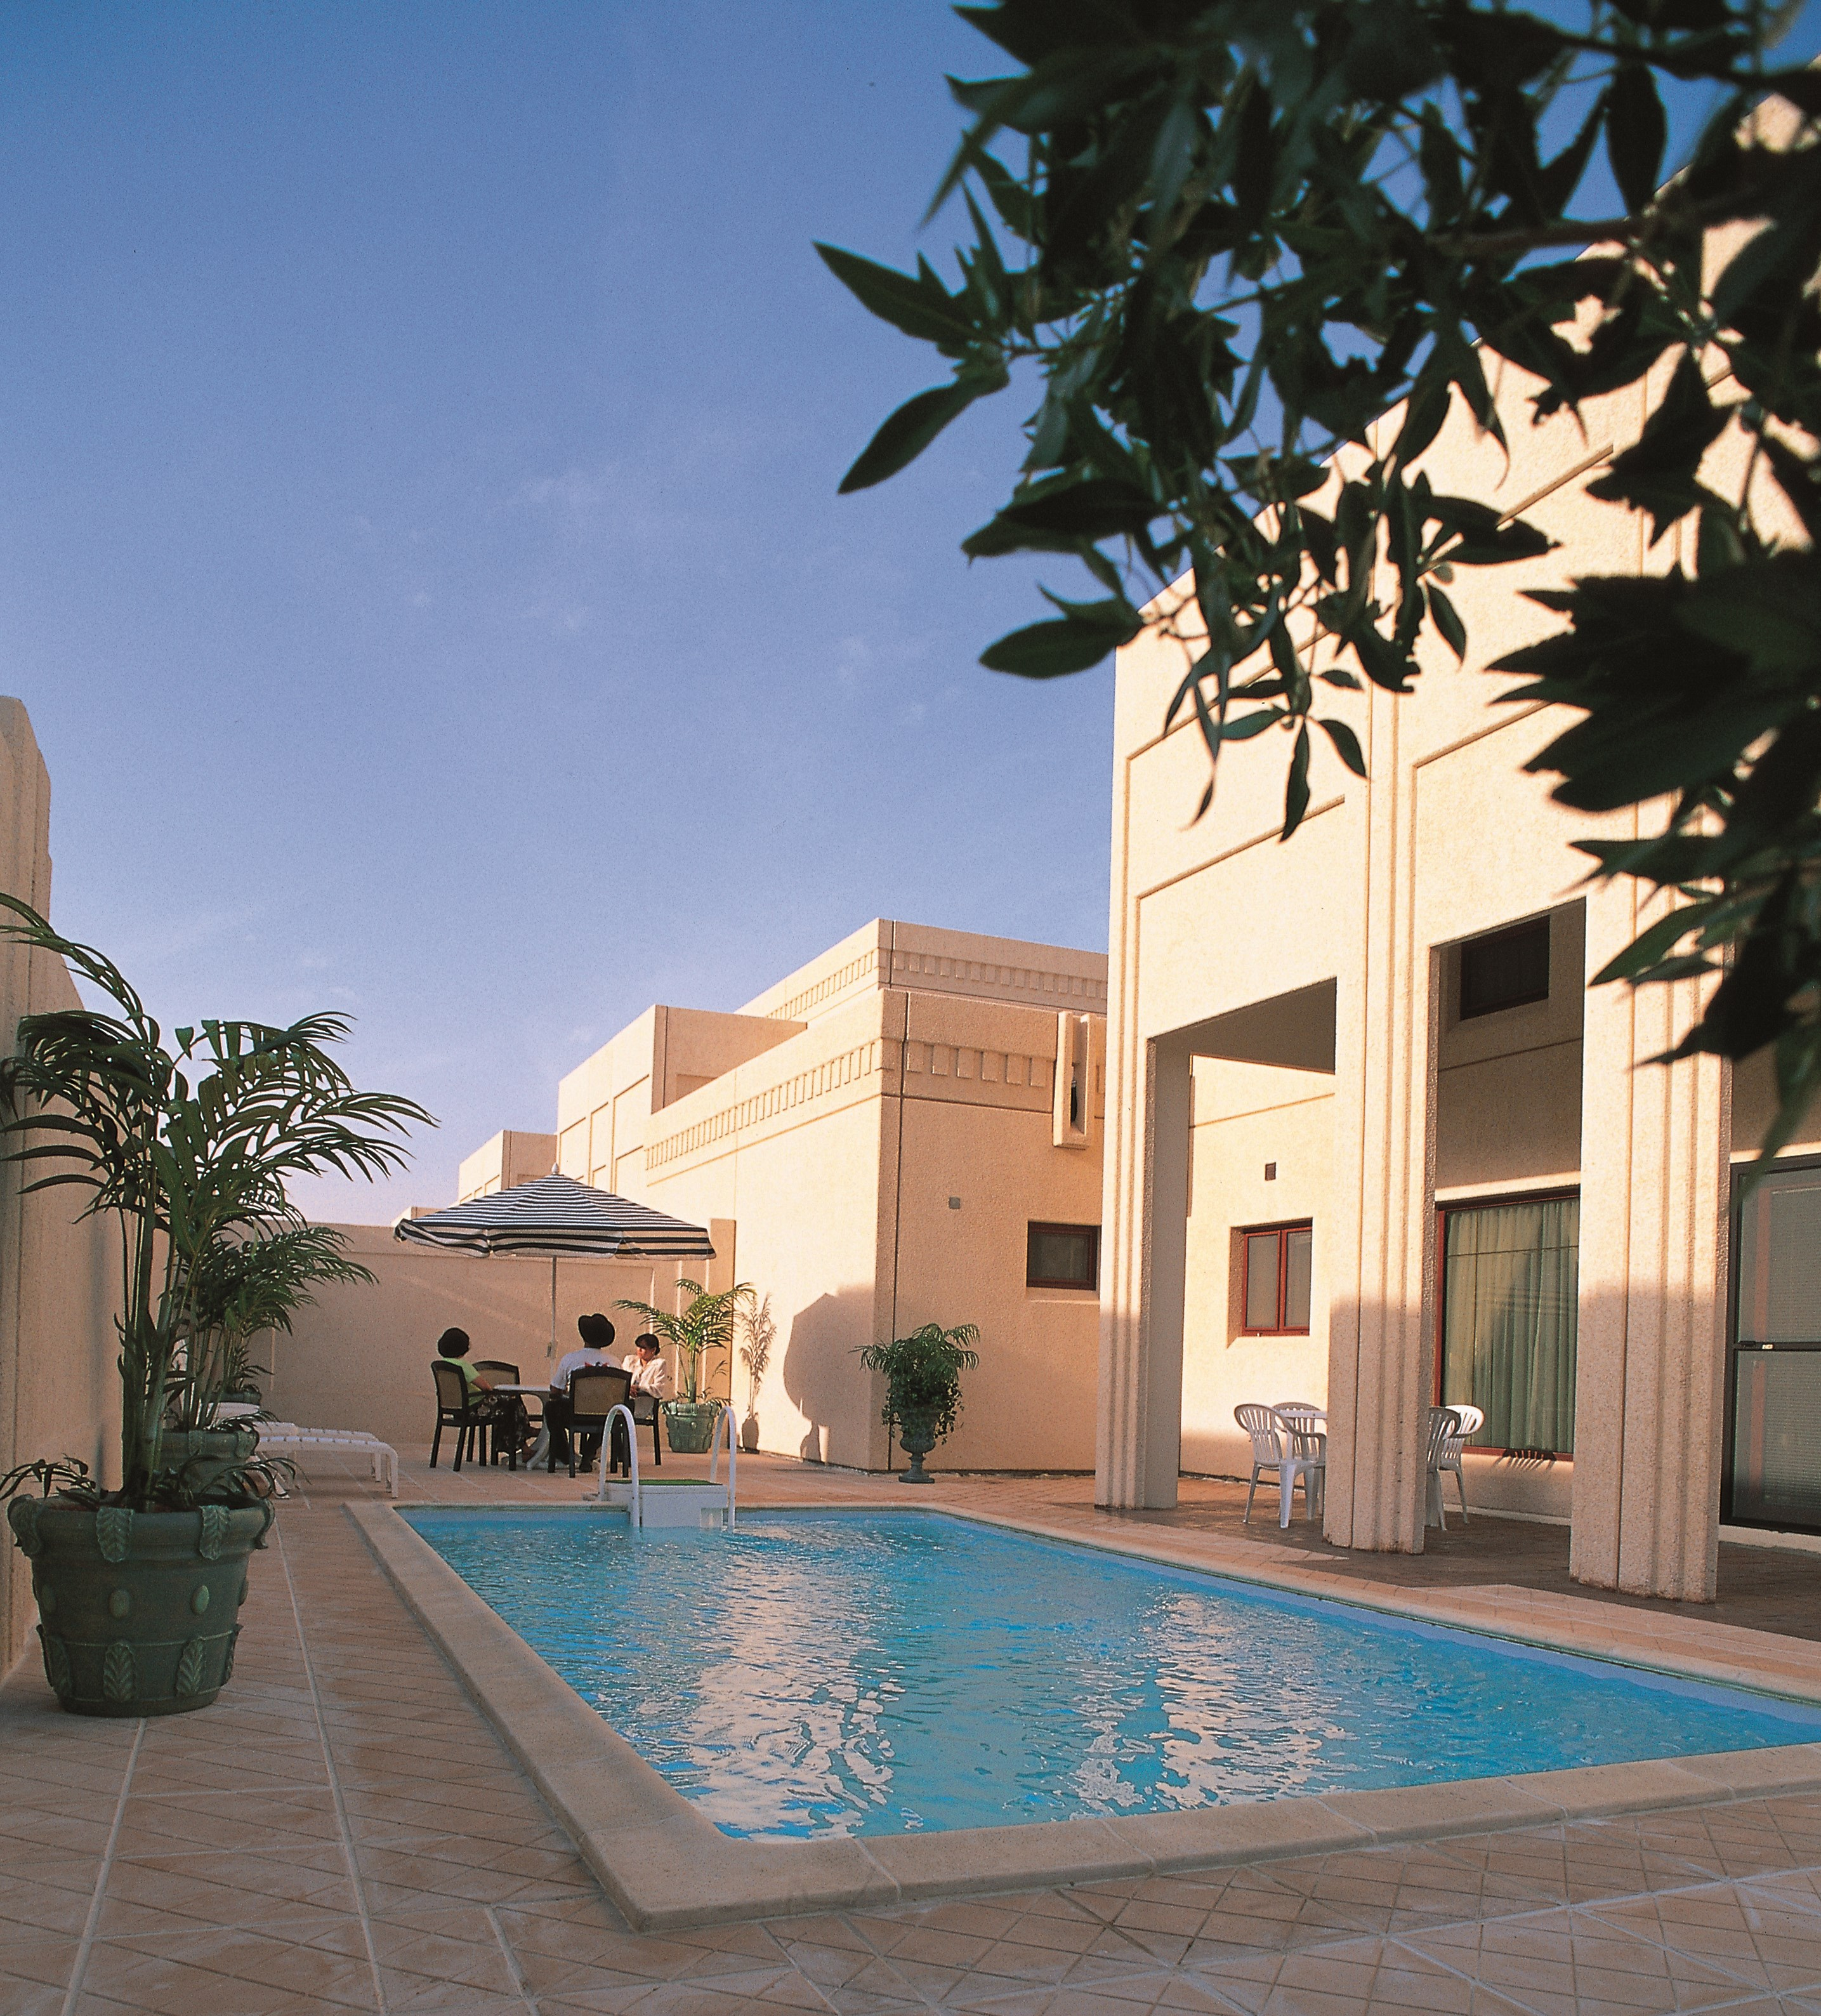 Residential Swimming Pool at Jadawel